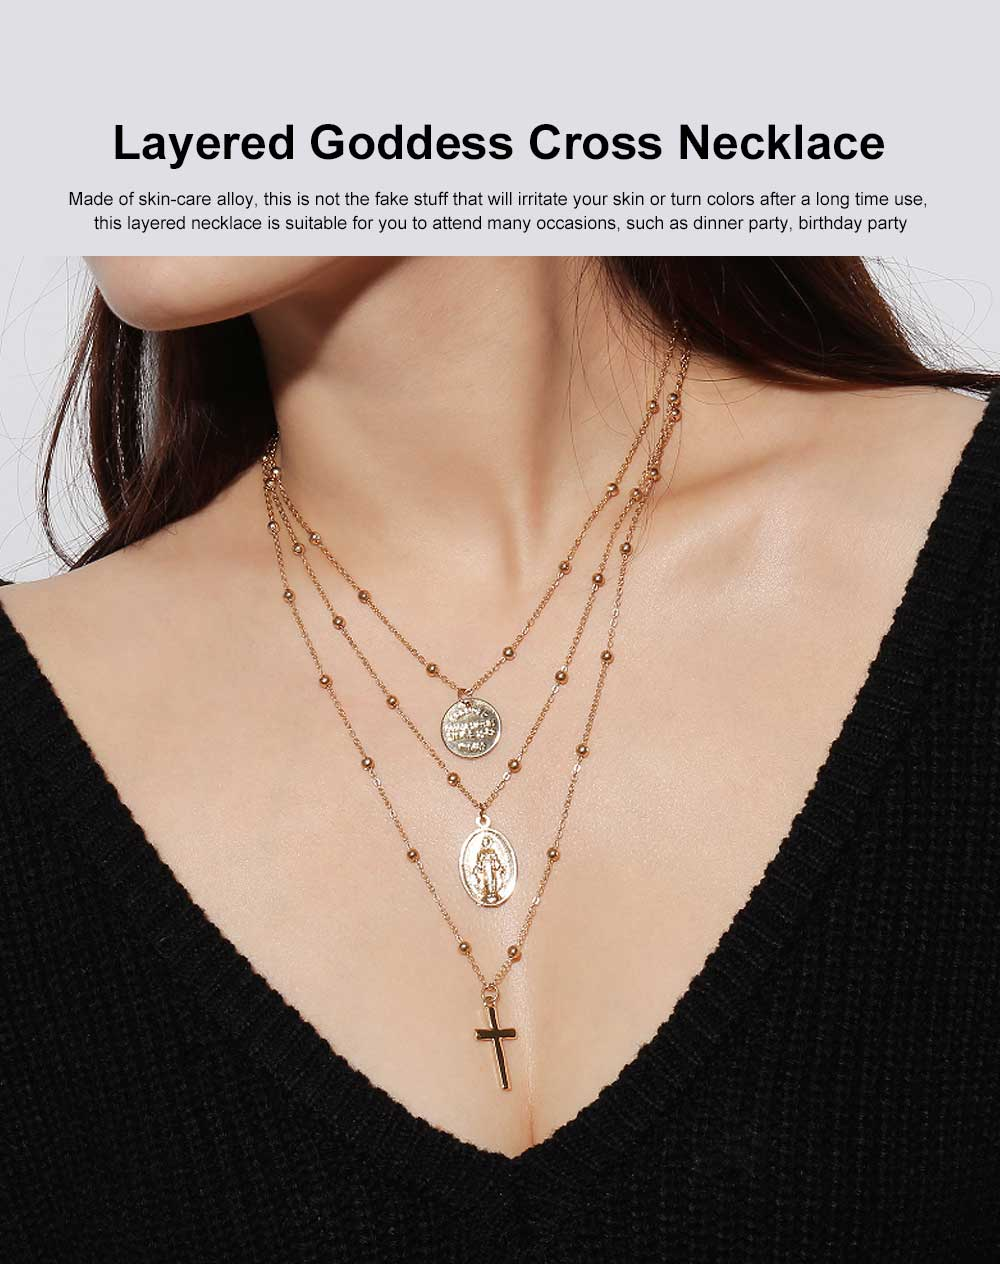 Layered Goddess Cross Necklace Retro Pendant Neck Chain for Wedding Party Jewelry 0